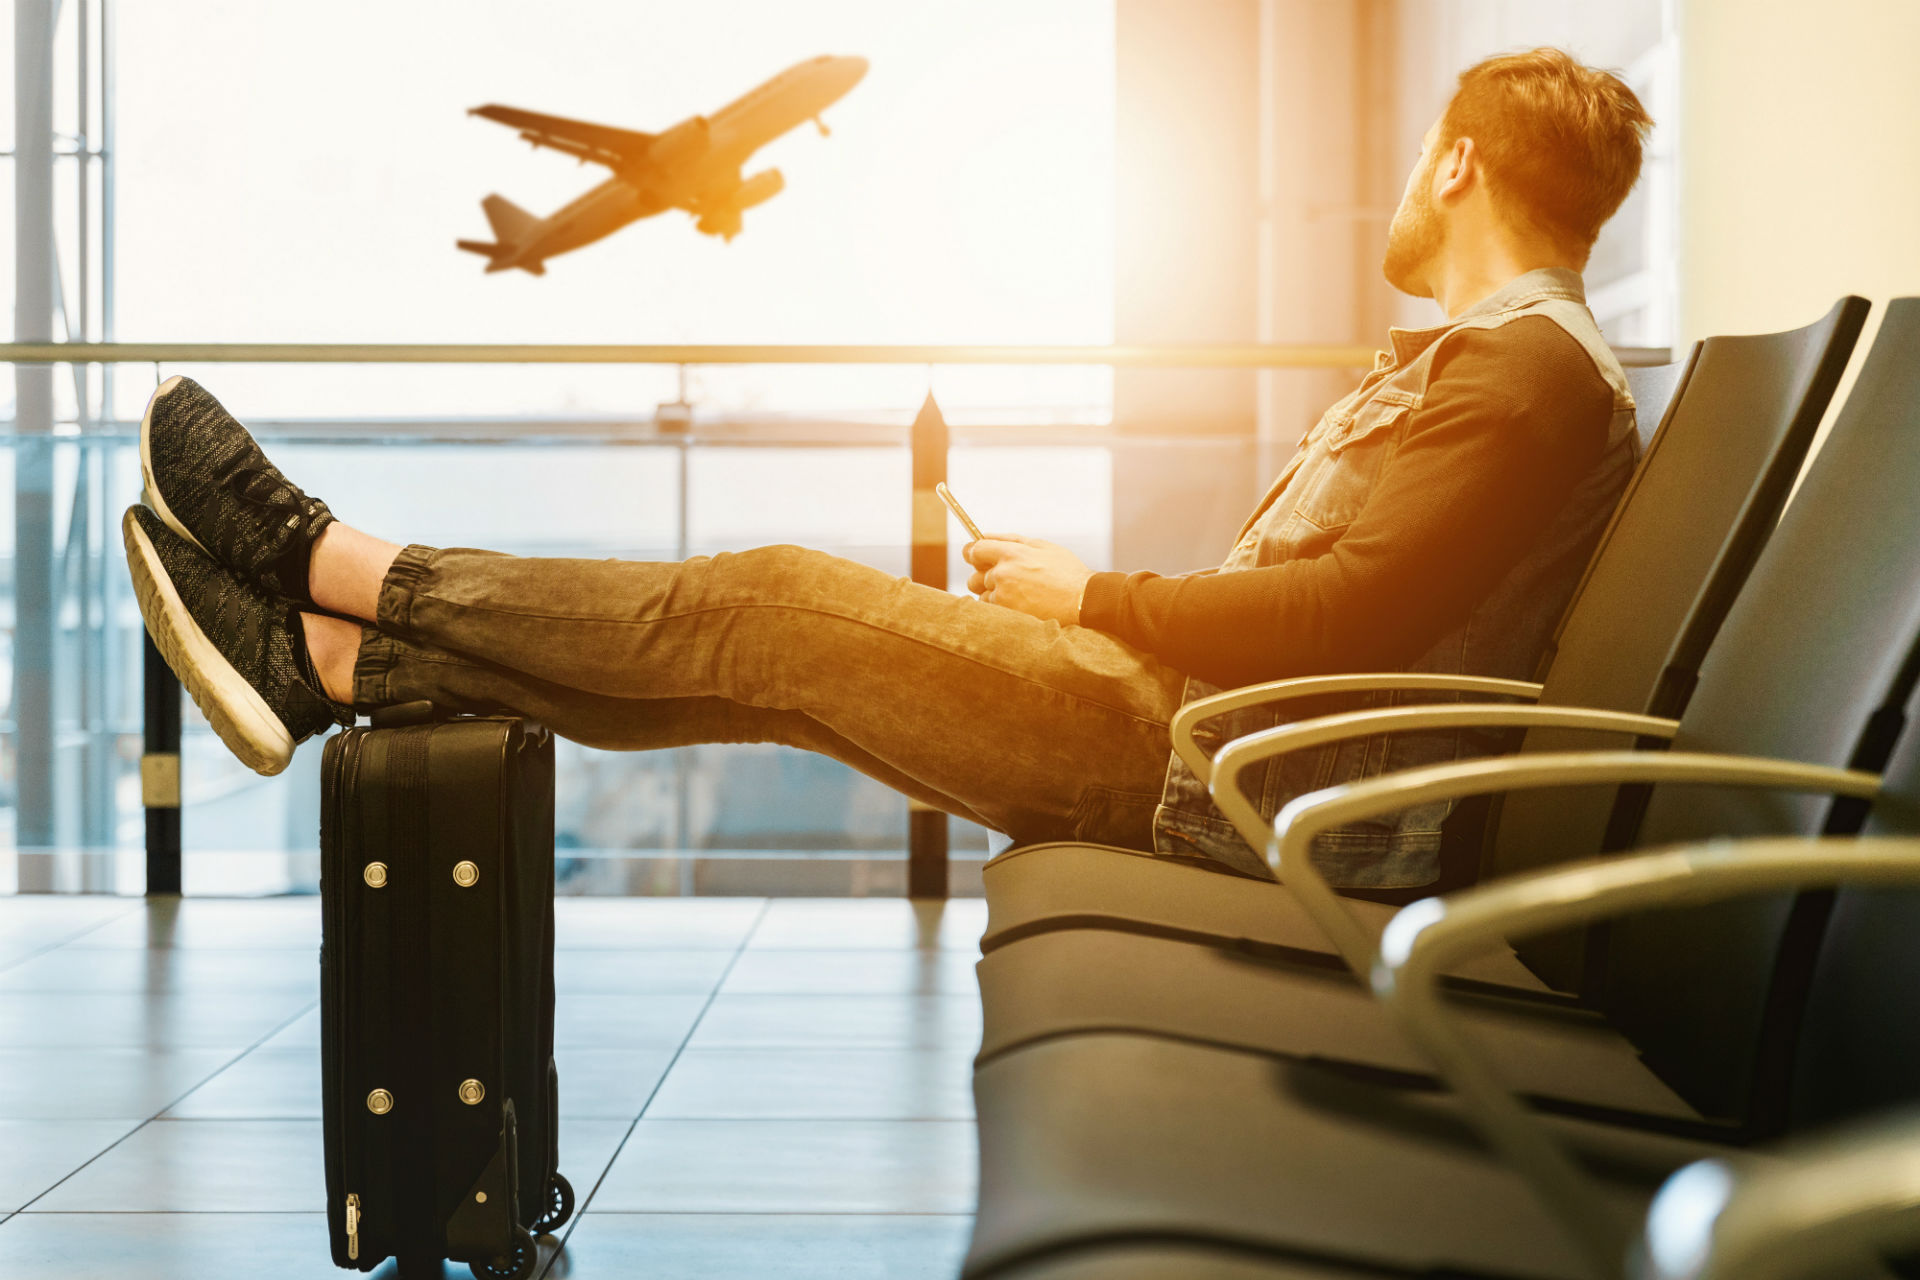 man sitting and watching an airplane take off